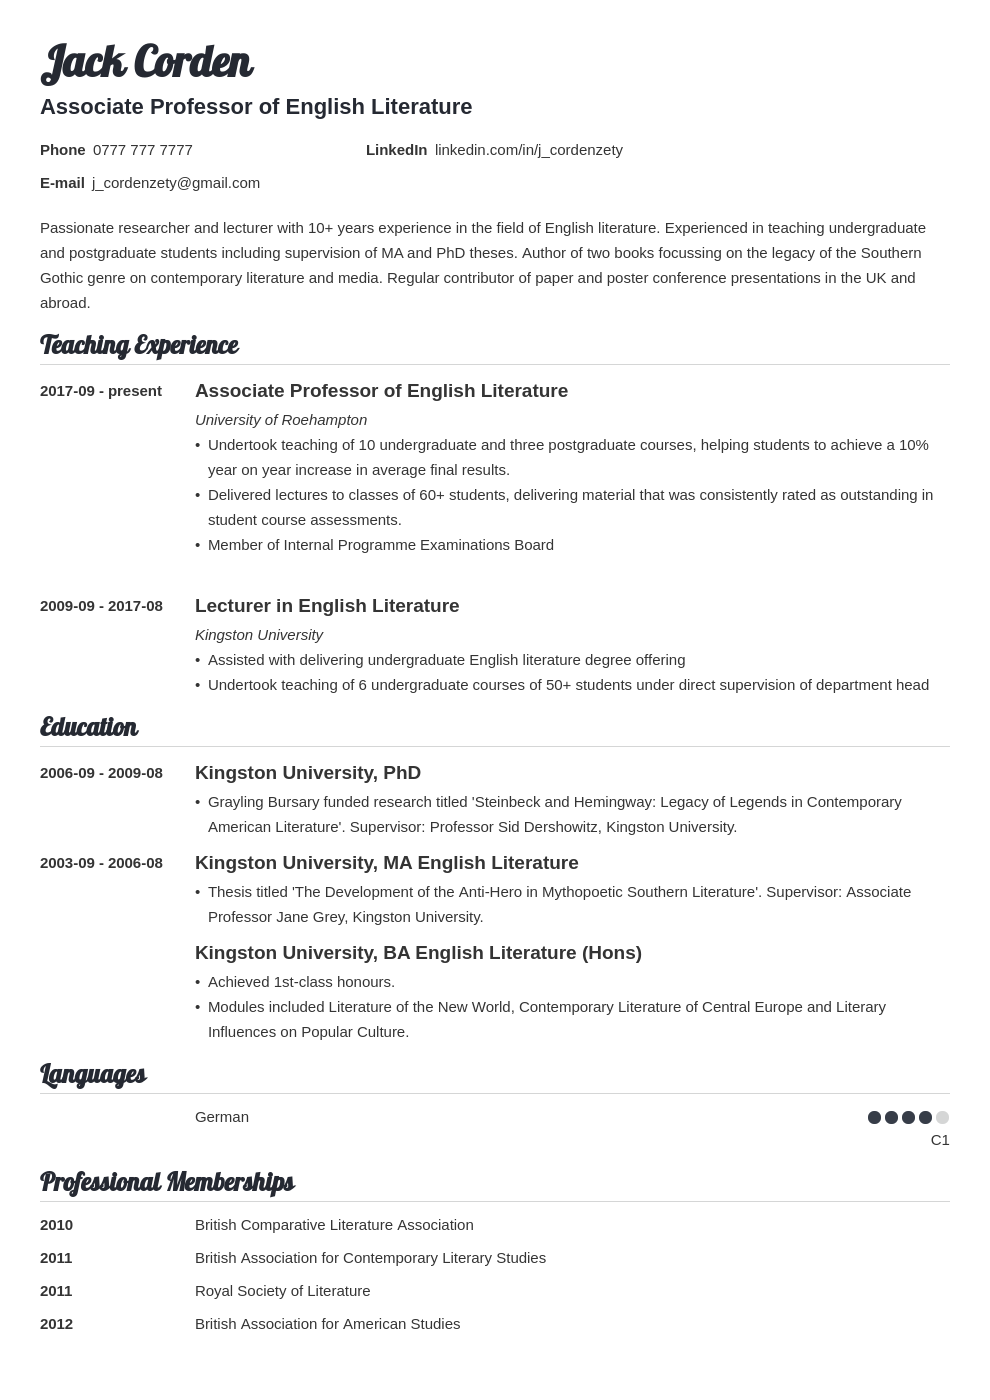 Postdoc Cover Letter Sample Pdf from cdn-images.zety.com